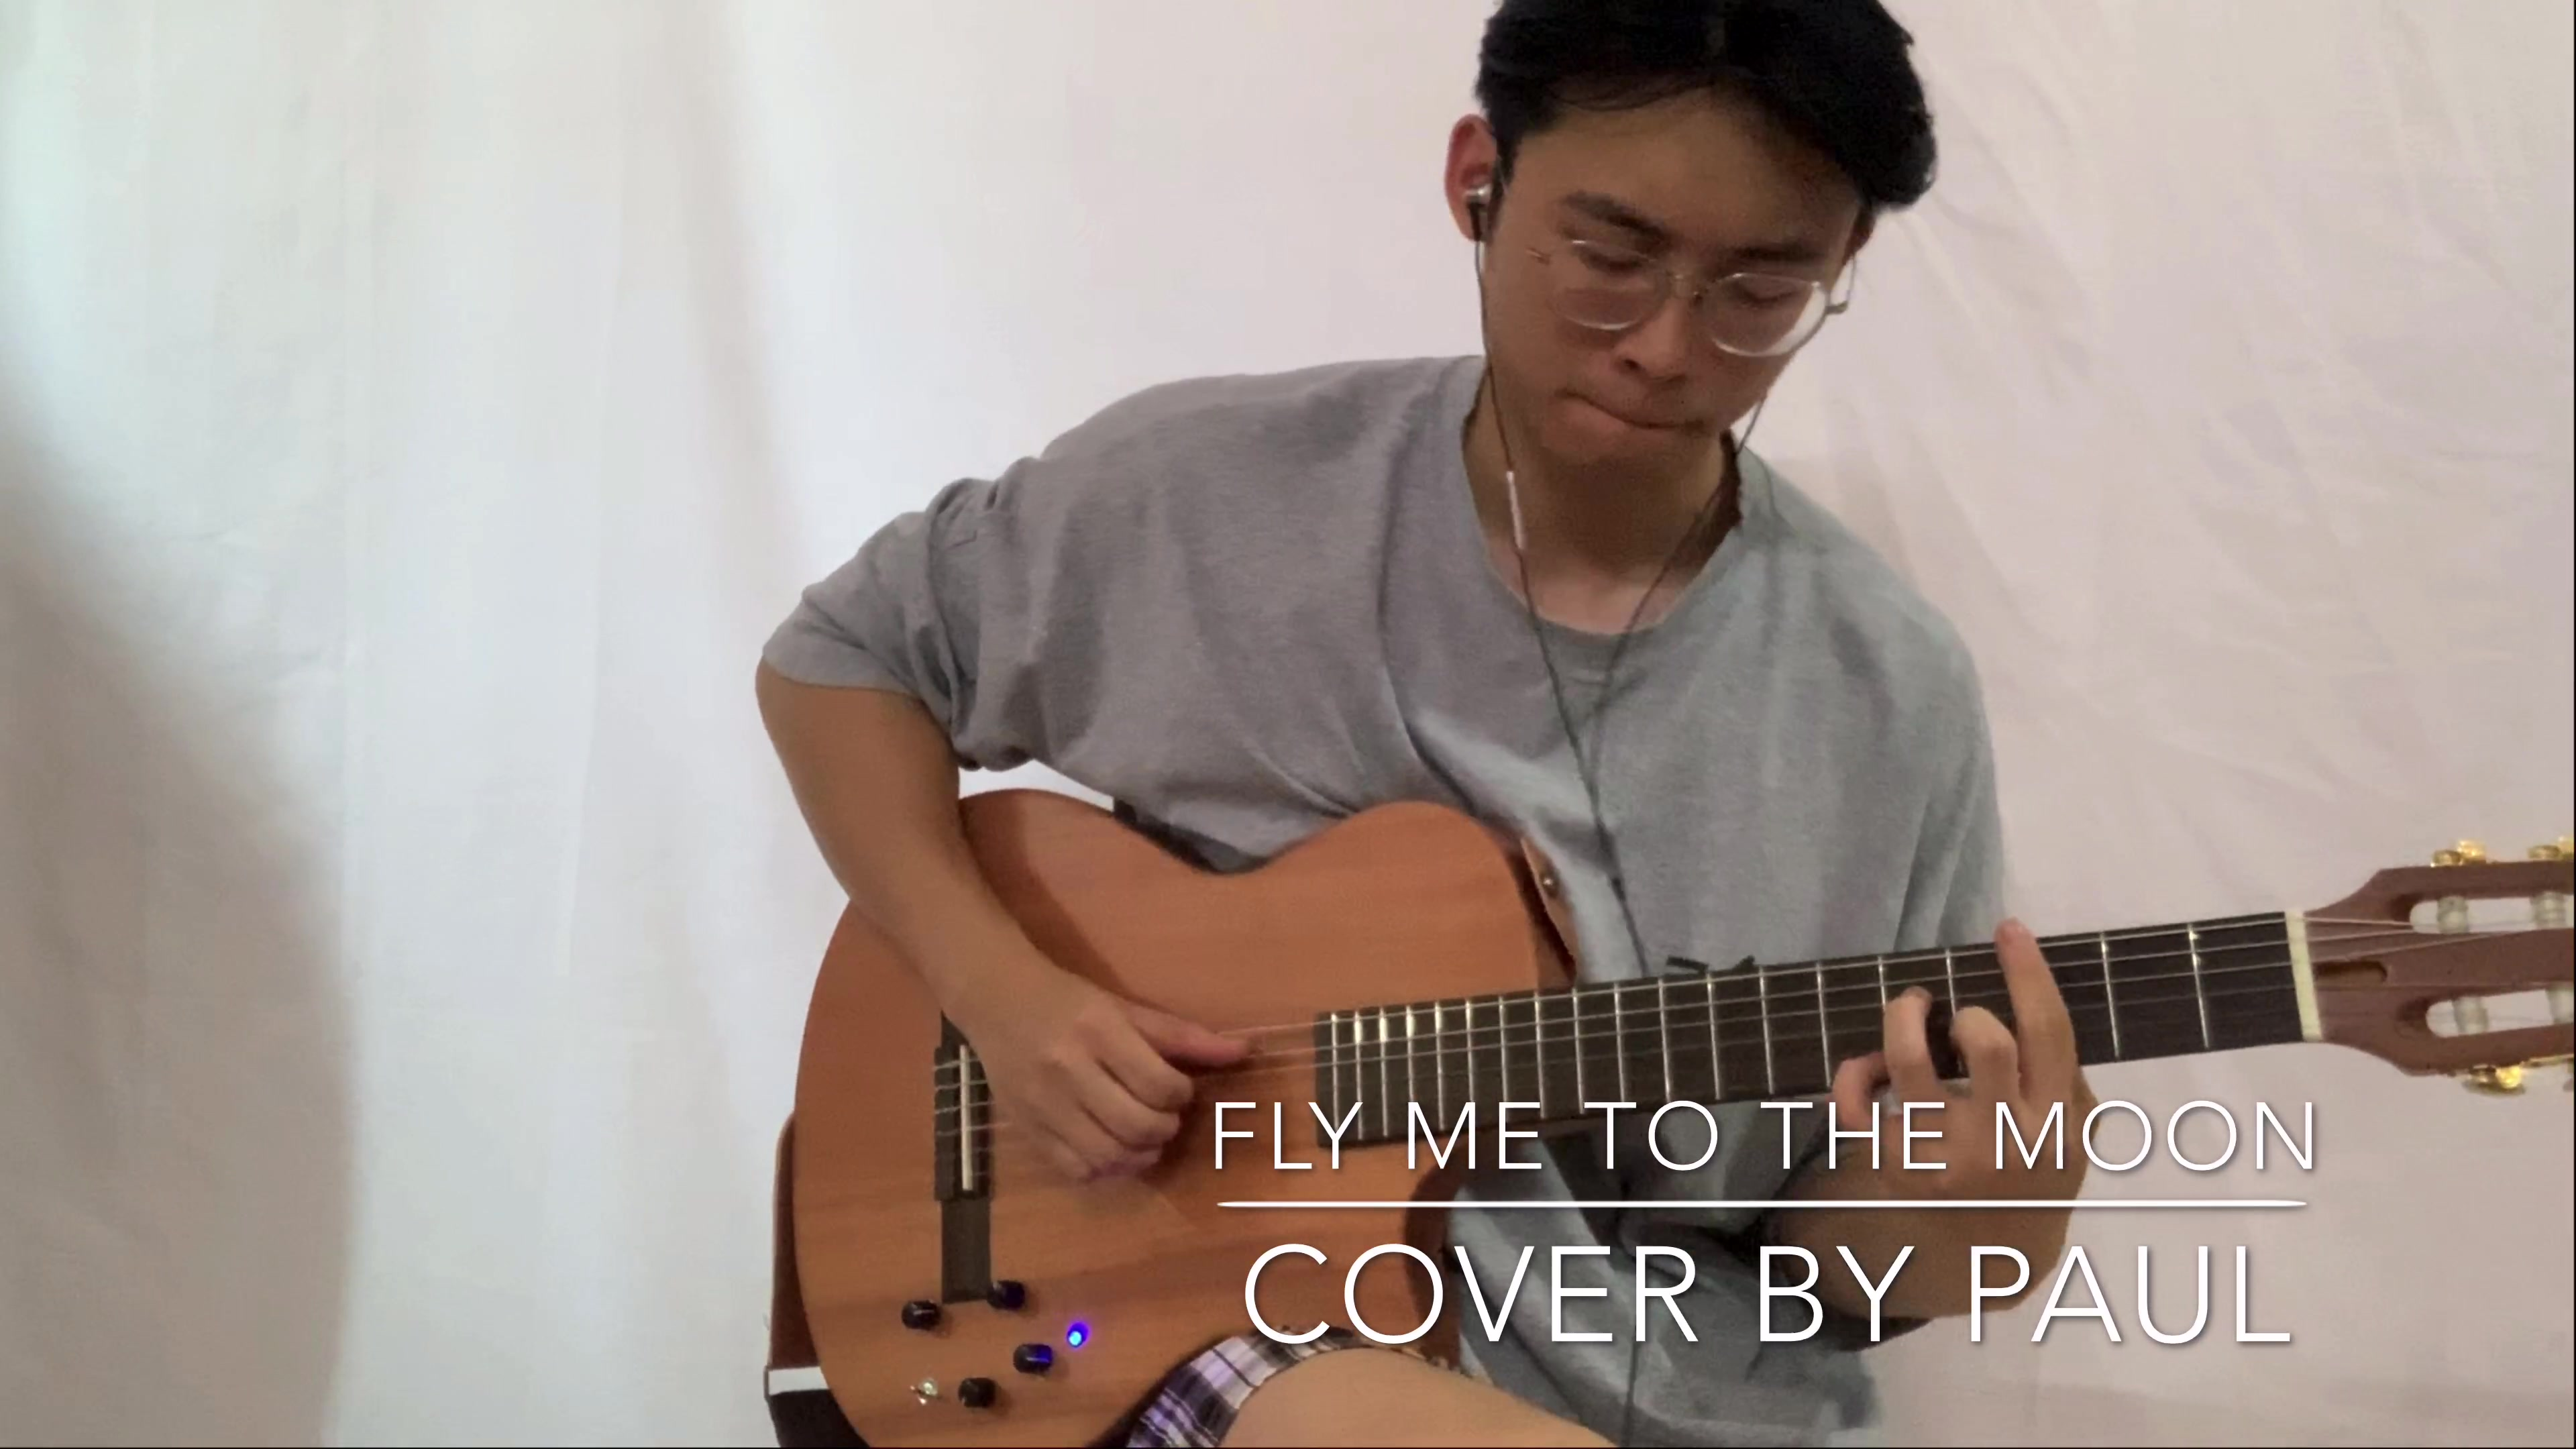 FLY ME TO THE MOON guitar cover